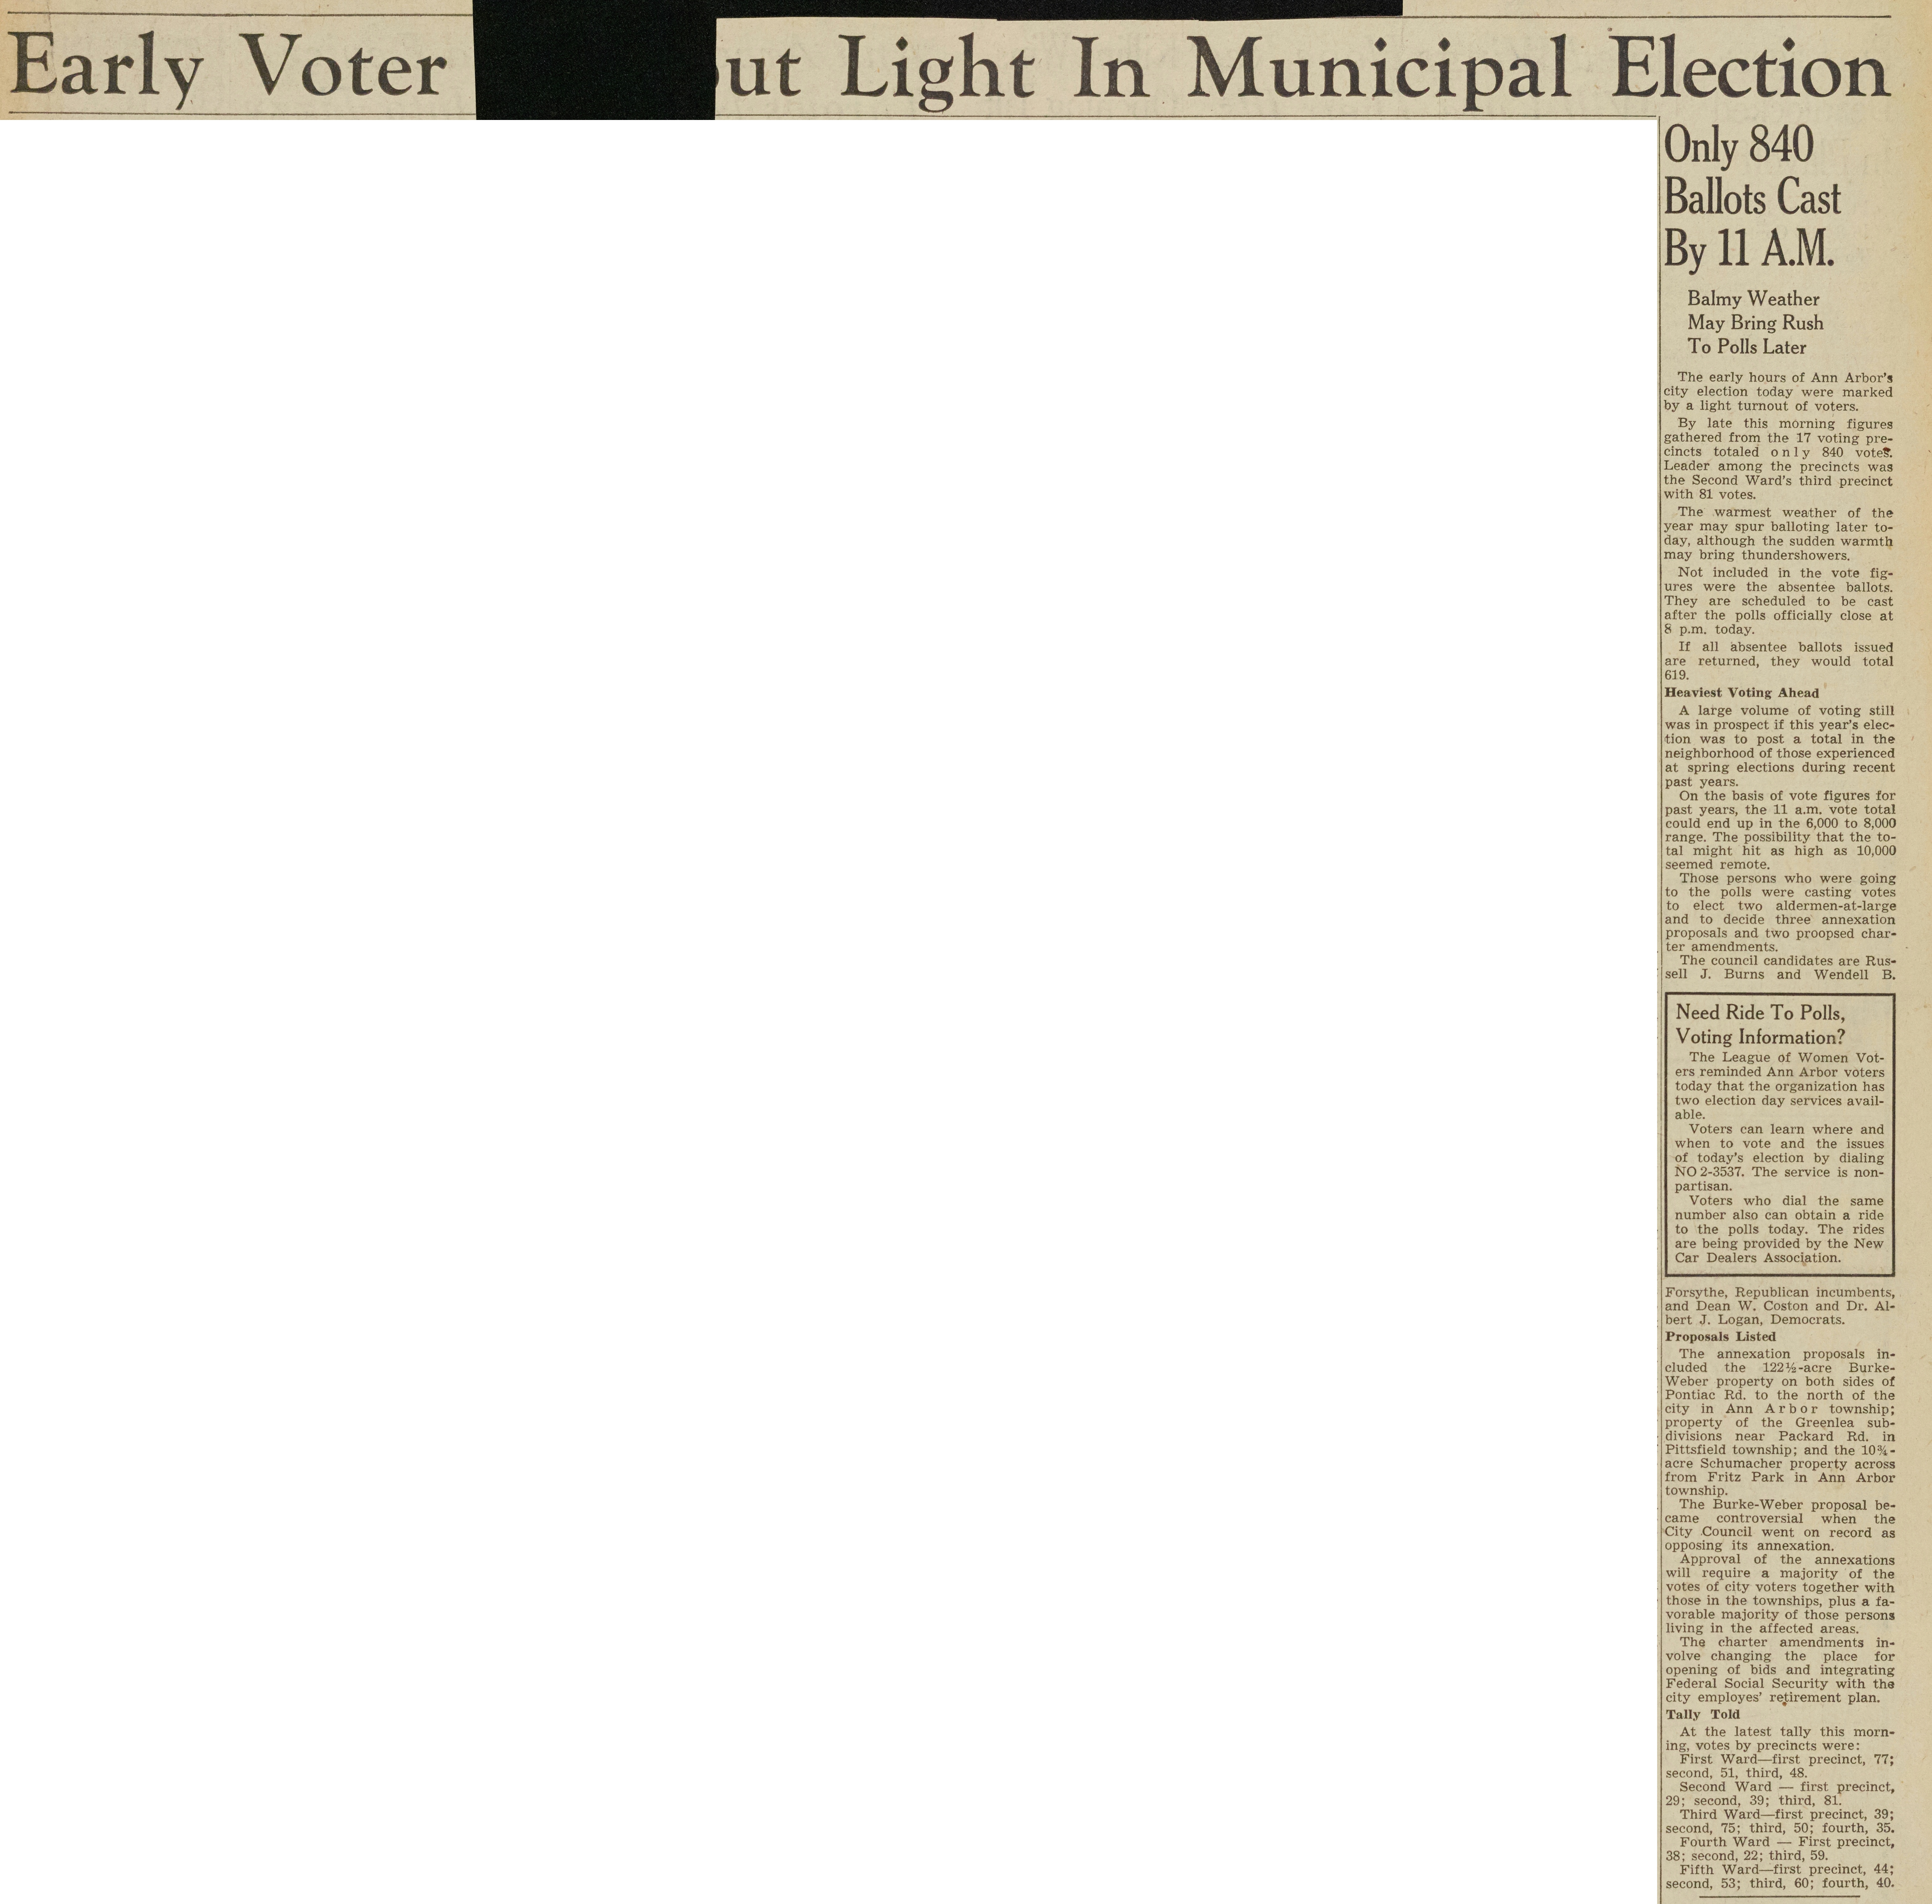 Early Voter Turnout Light In Municipal Election image